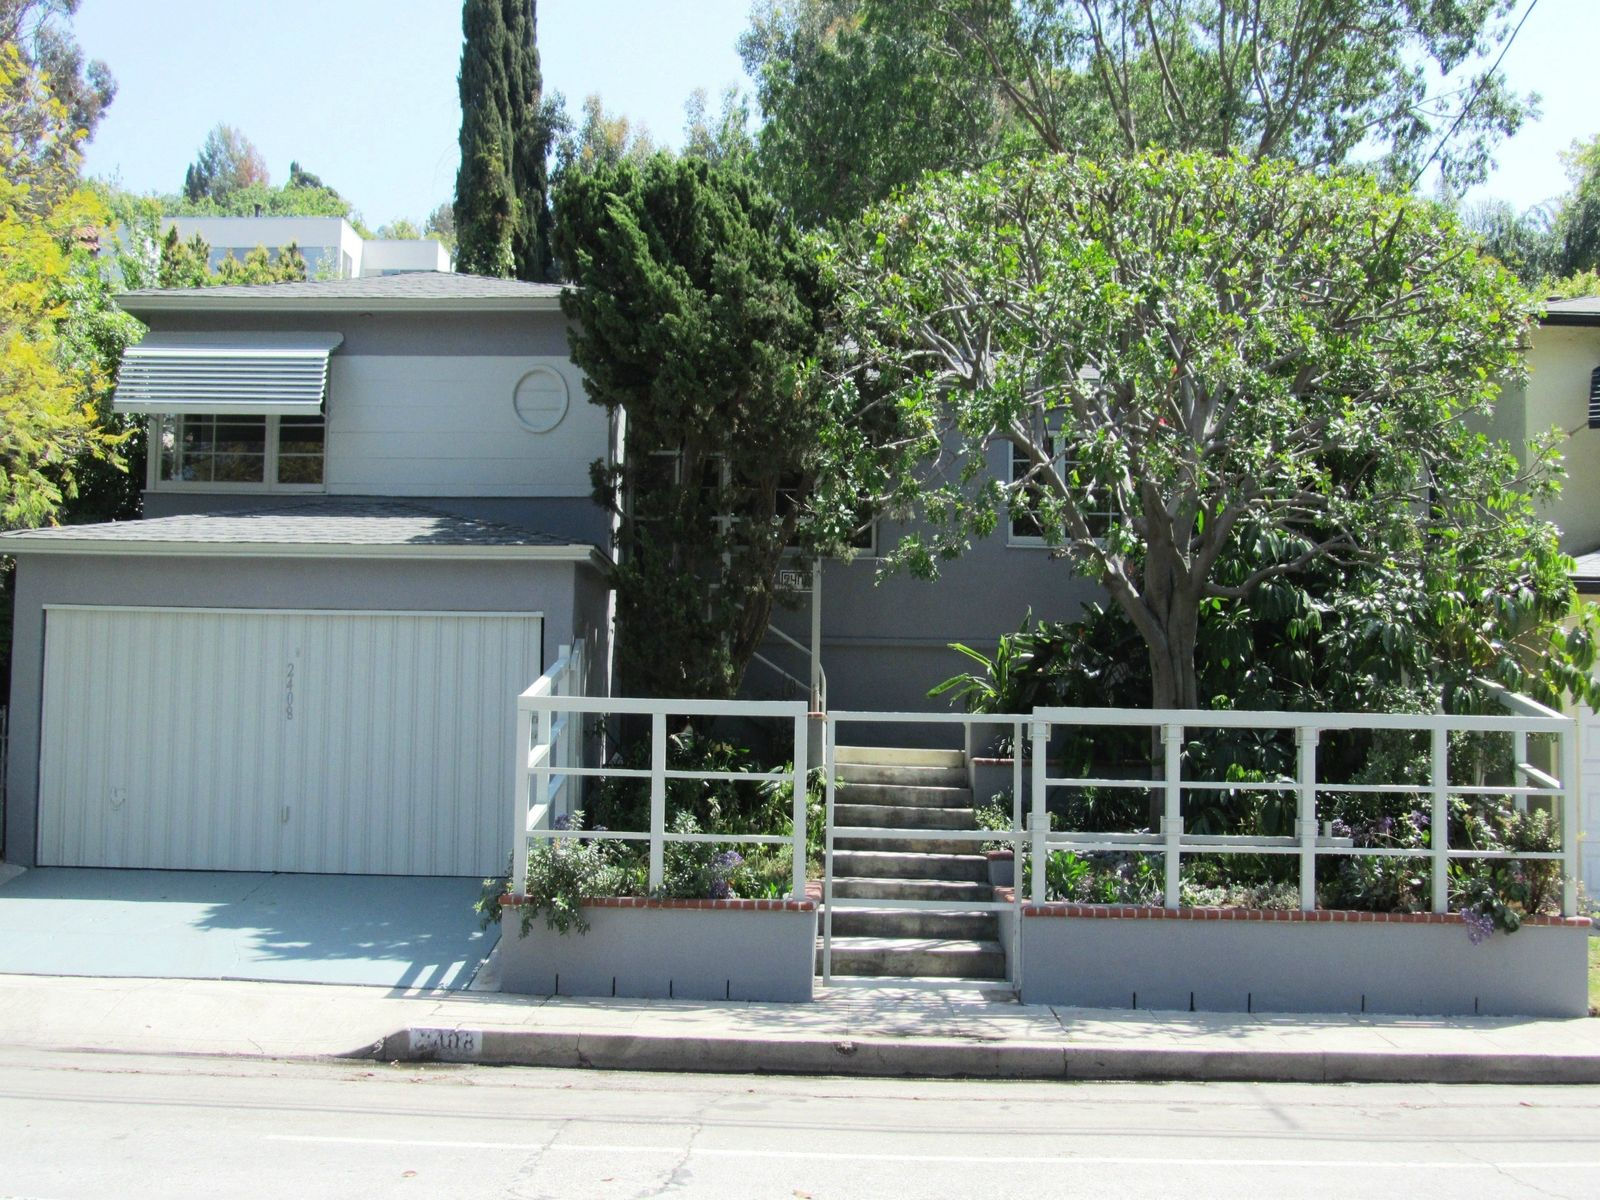 2408 Griffith Park, Los Angeles CA Single Family Home - Los Angeles Real Estate